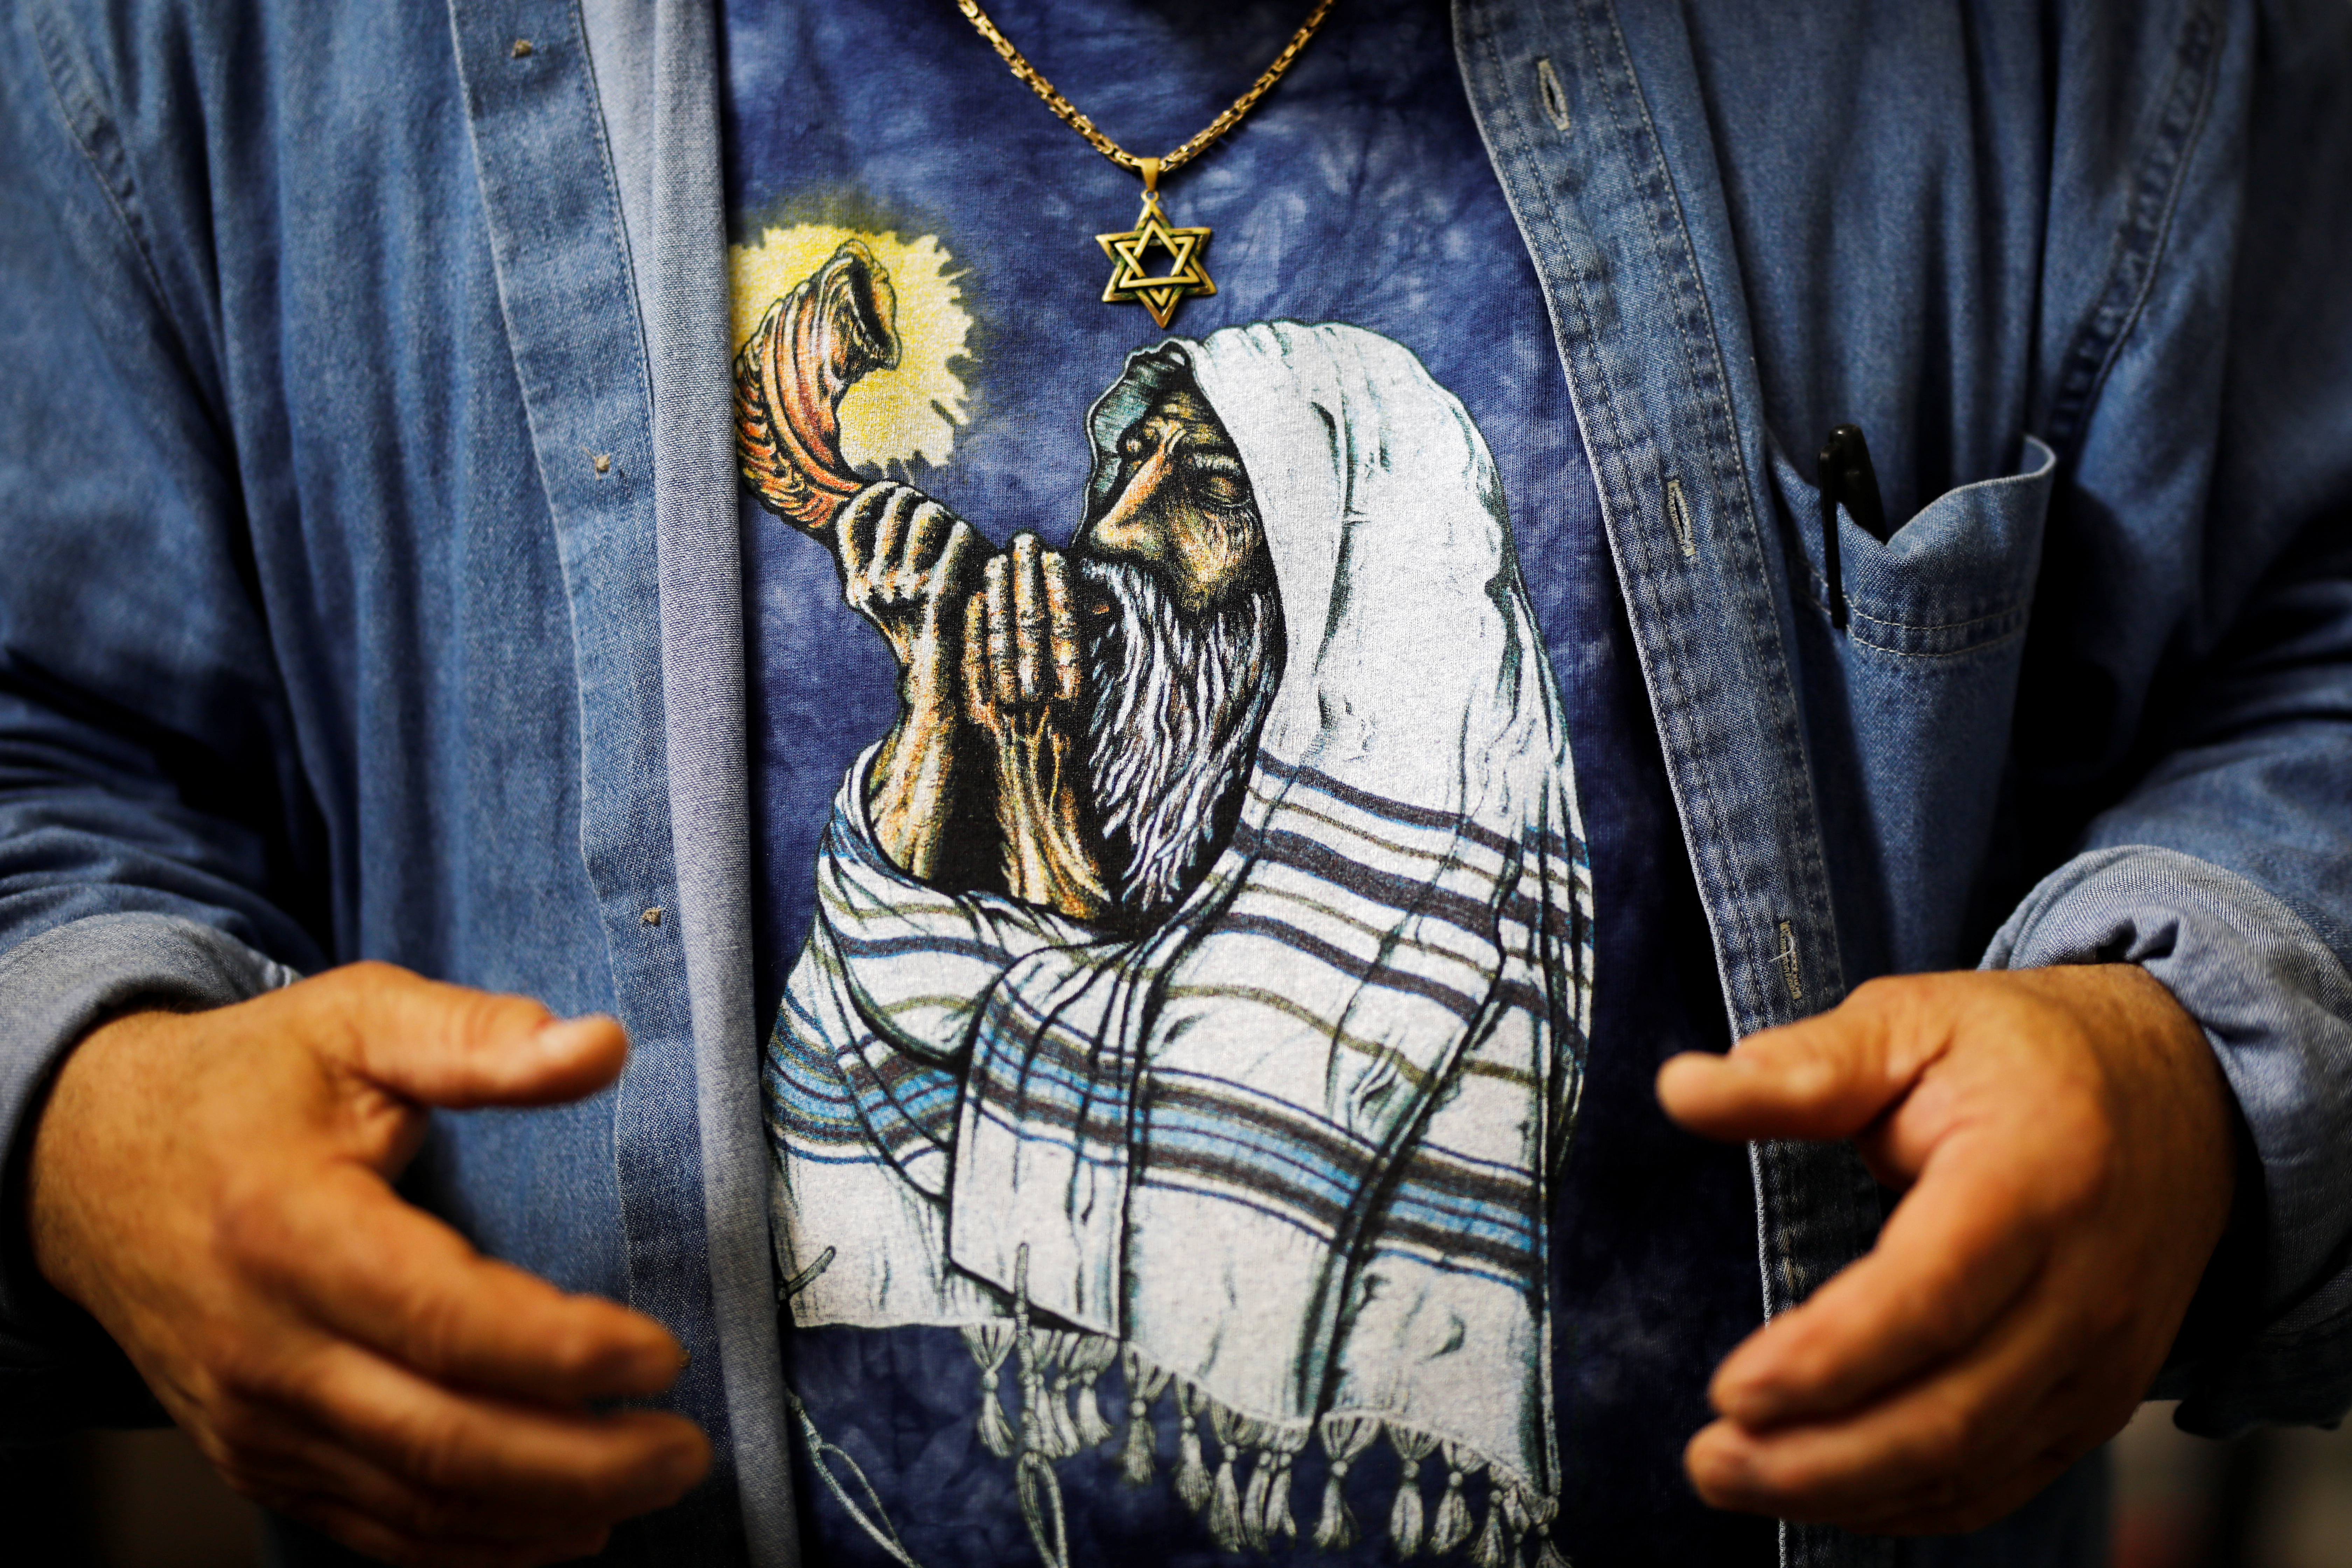 A print of an orthodox Jewish man sounding the Shofar, a ram's horn, is seen on the shirt of Shofar maker Robert Weinger, in his workshop in Rishon Lezion, Israel, Feb. 27, 2018.